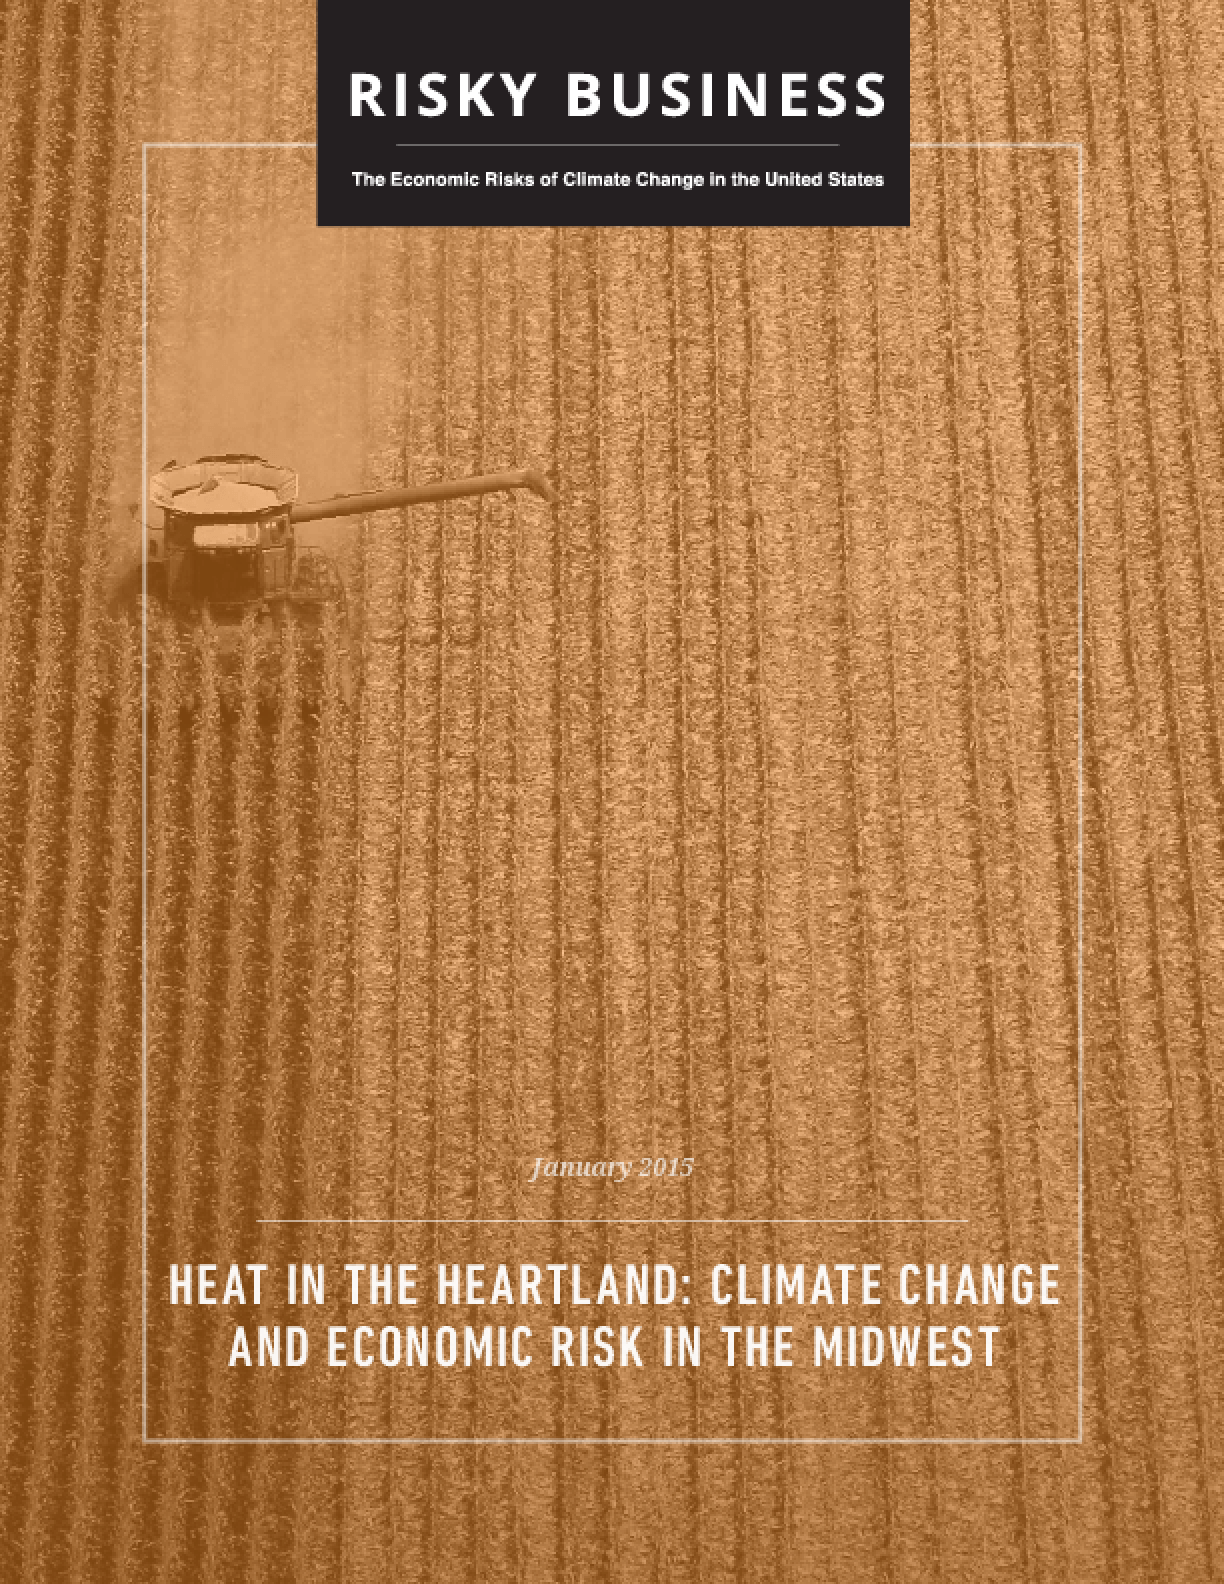 Heat in the Heartland: Climate Change and Economic Risk in the Midwest